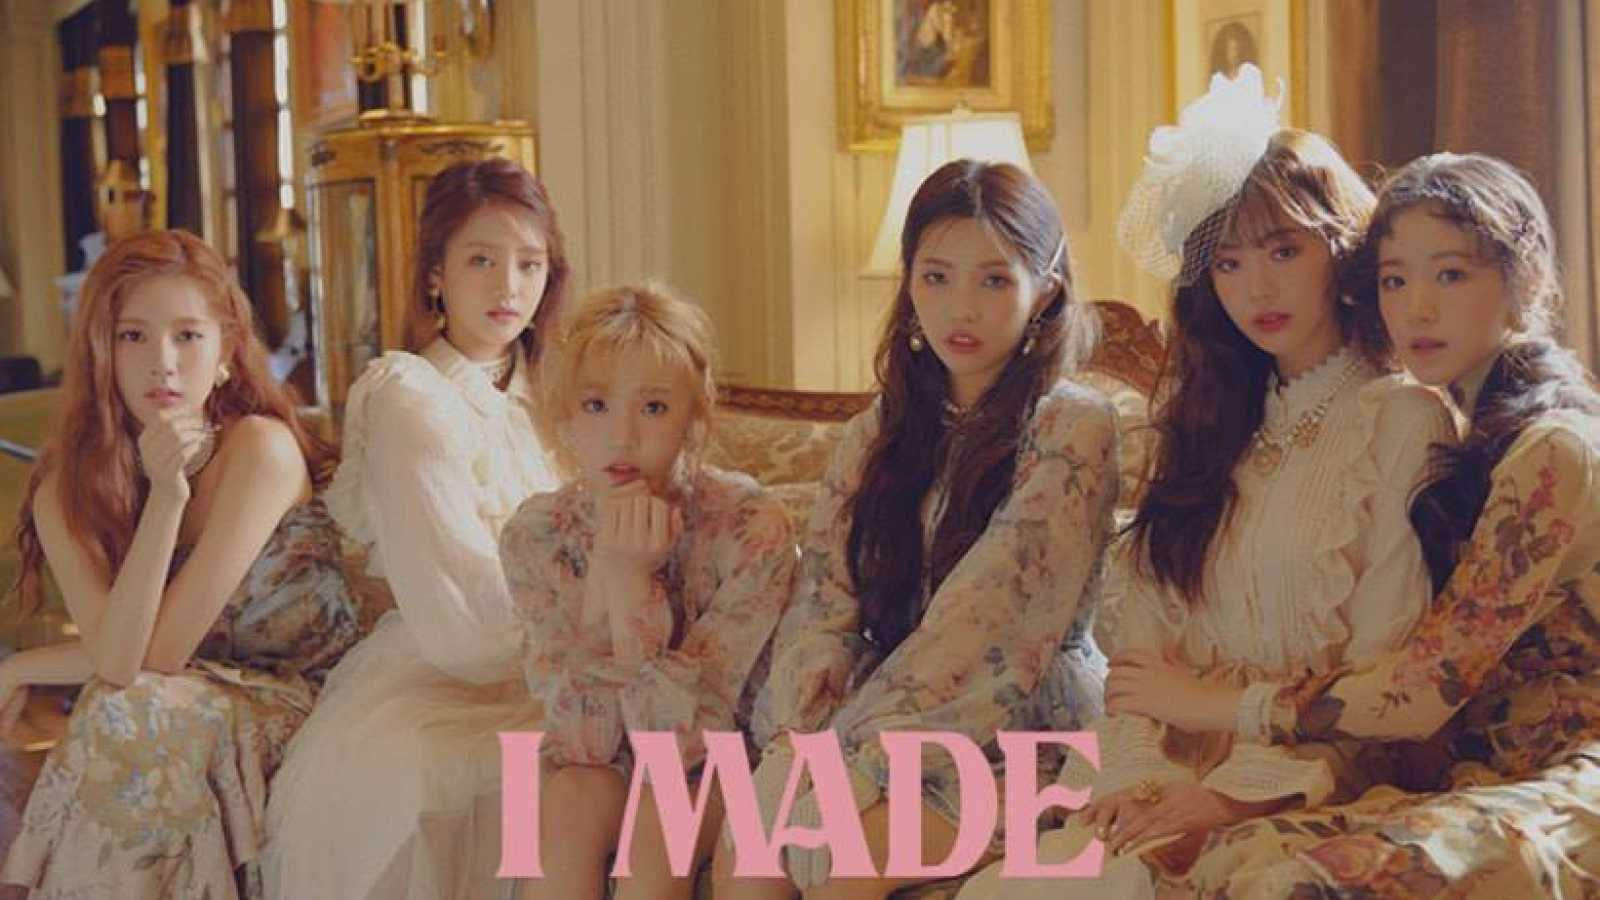 (G)I-DLE © CUBE Entertainment. All rights reserved